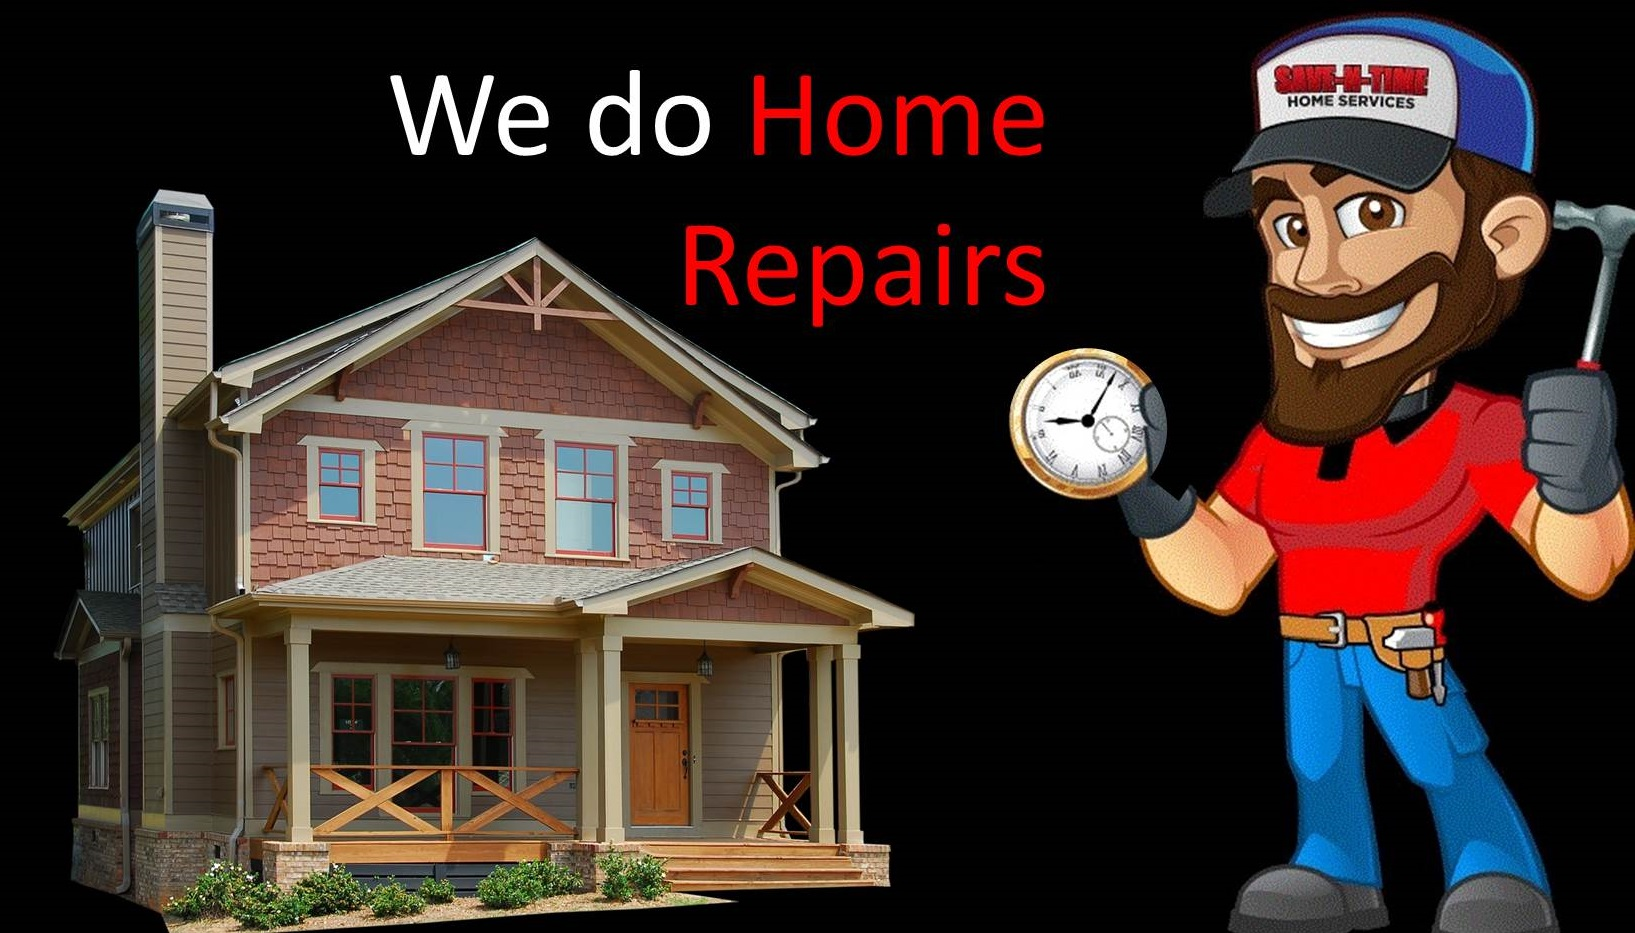 We do Home Repairs